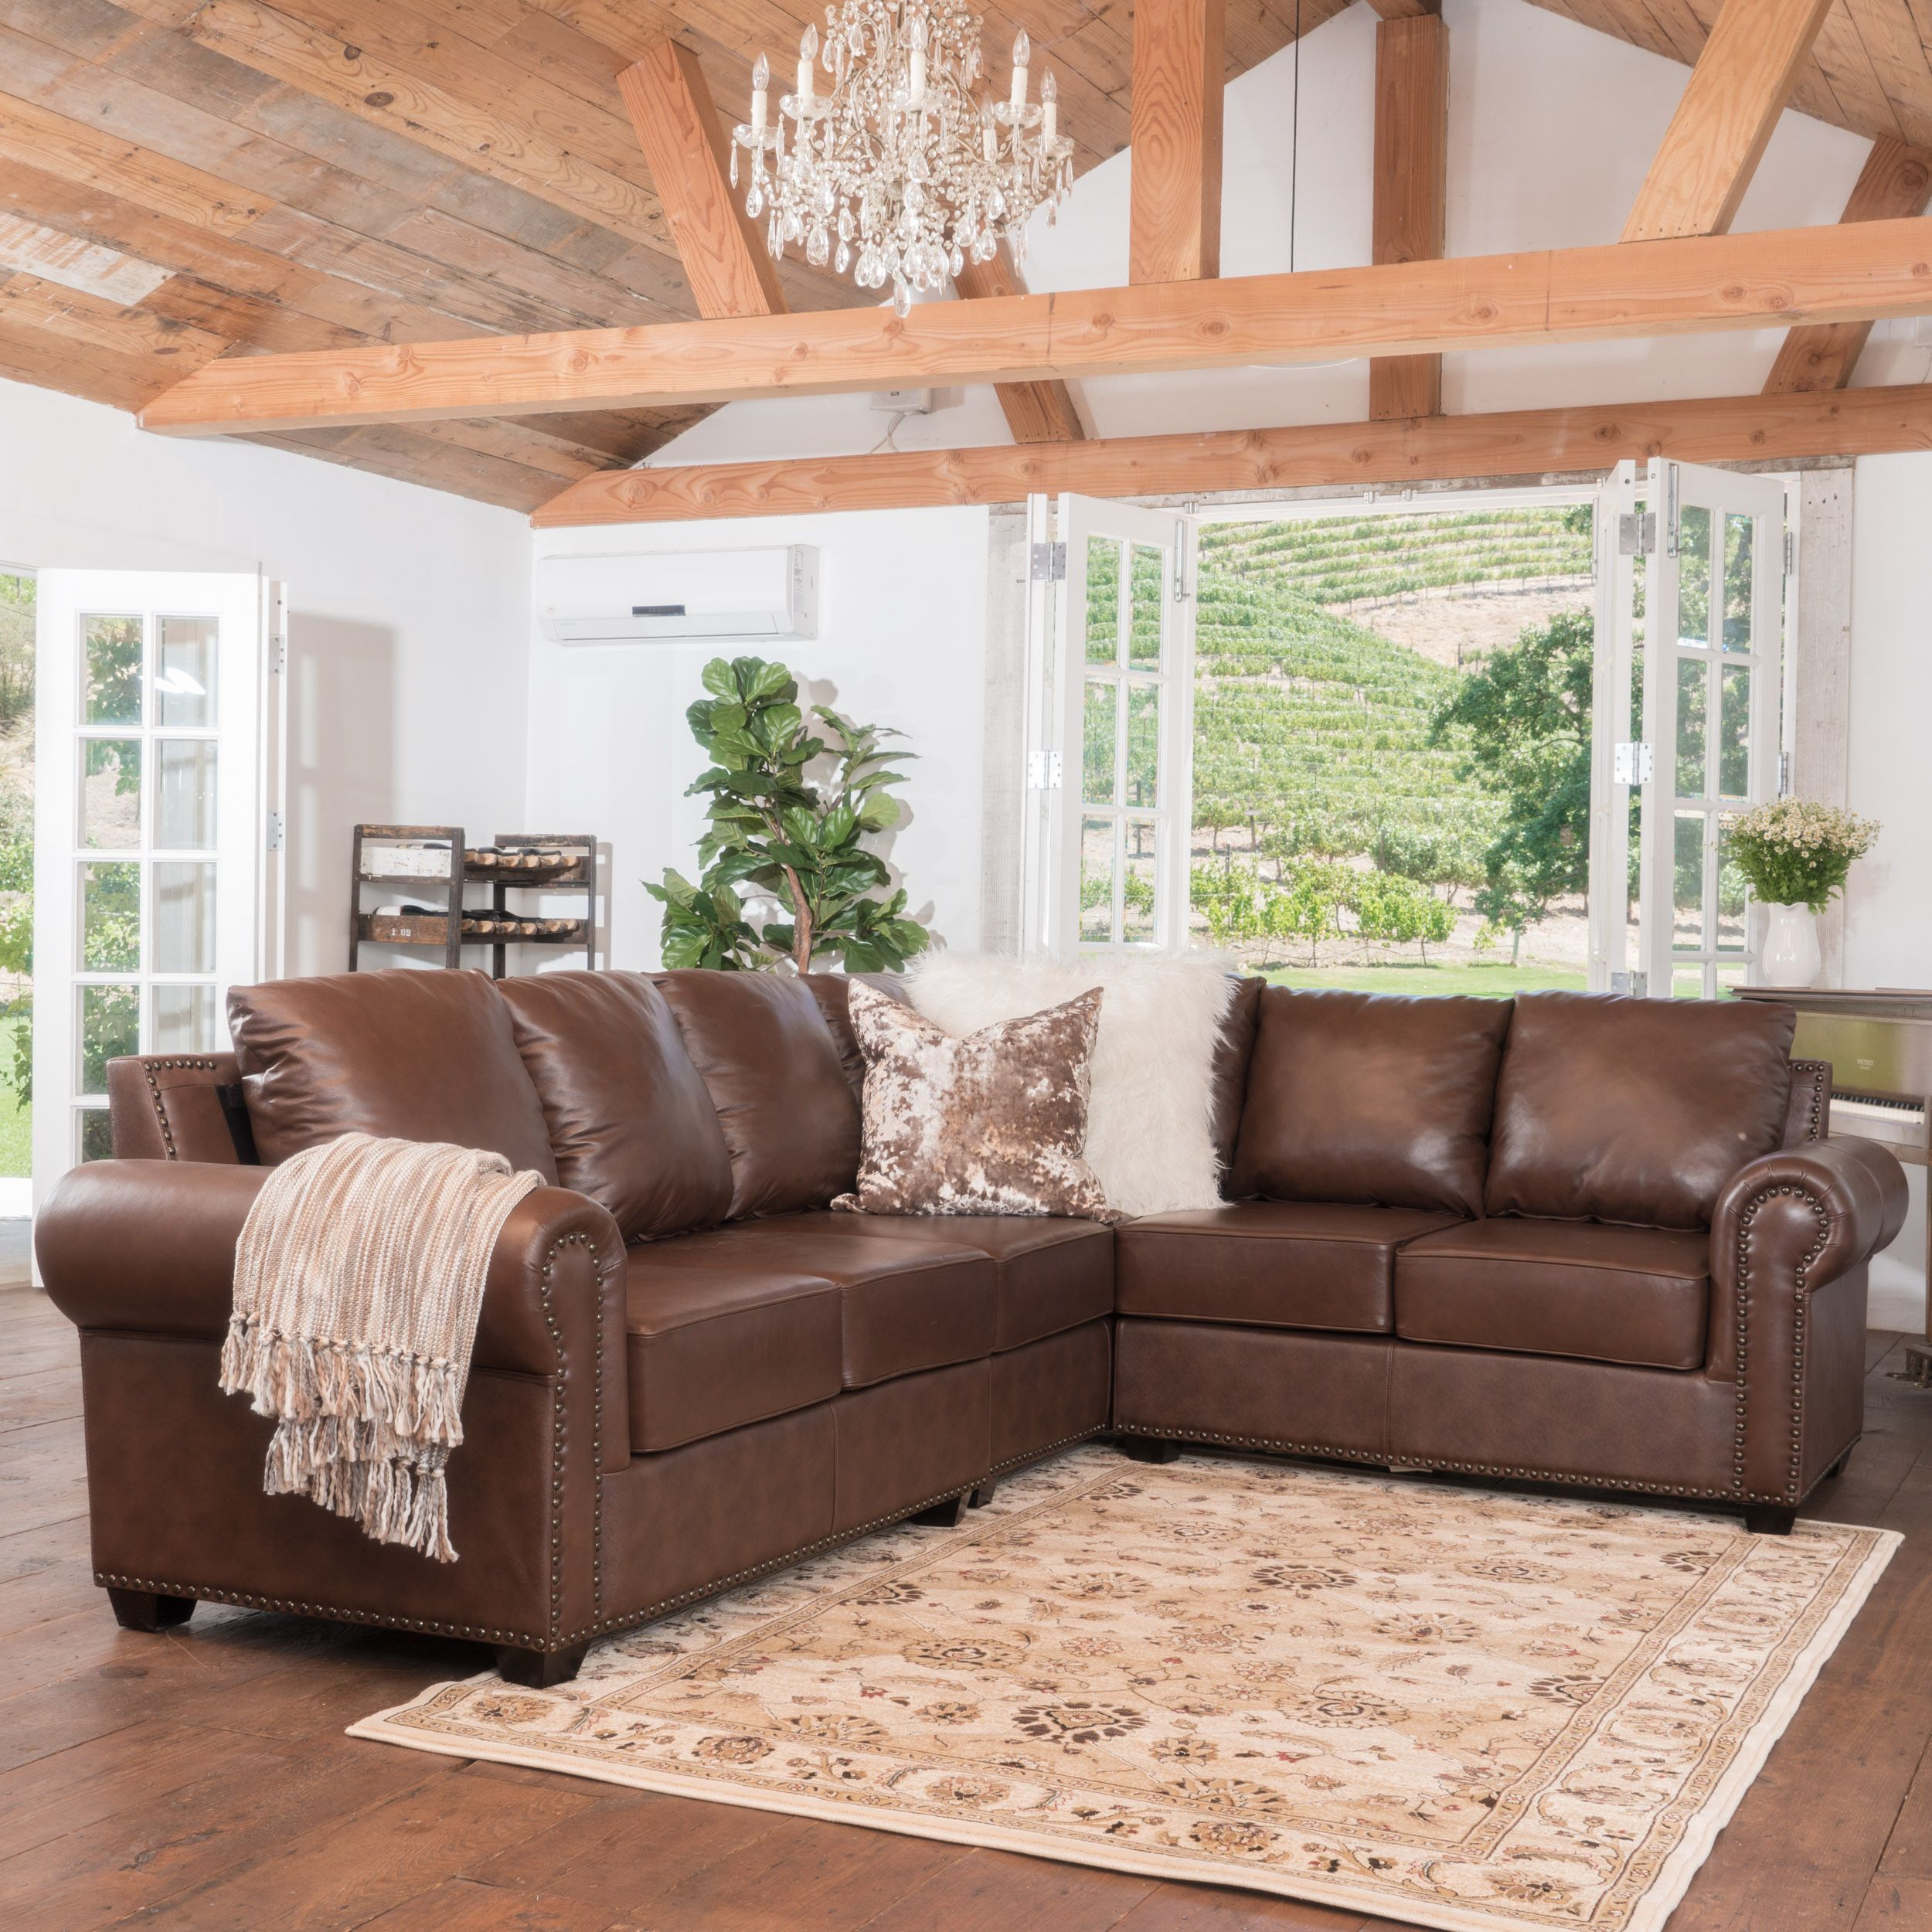 Olivier Studded Leather Sectional Couch Leathersectionalsofas